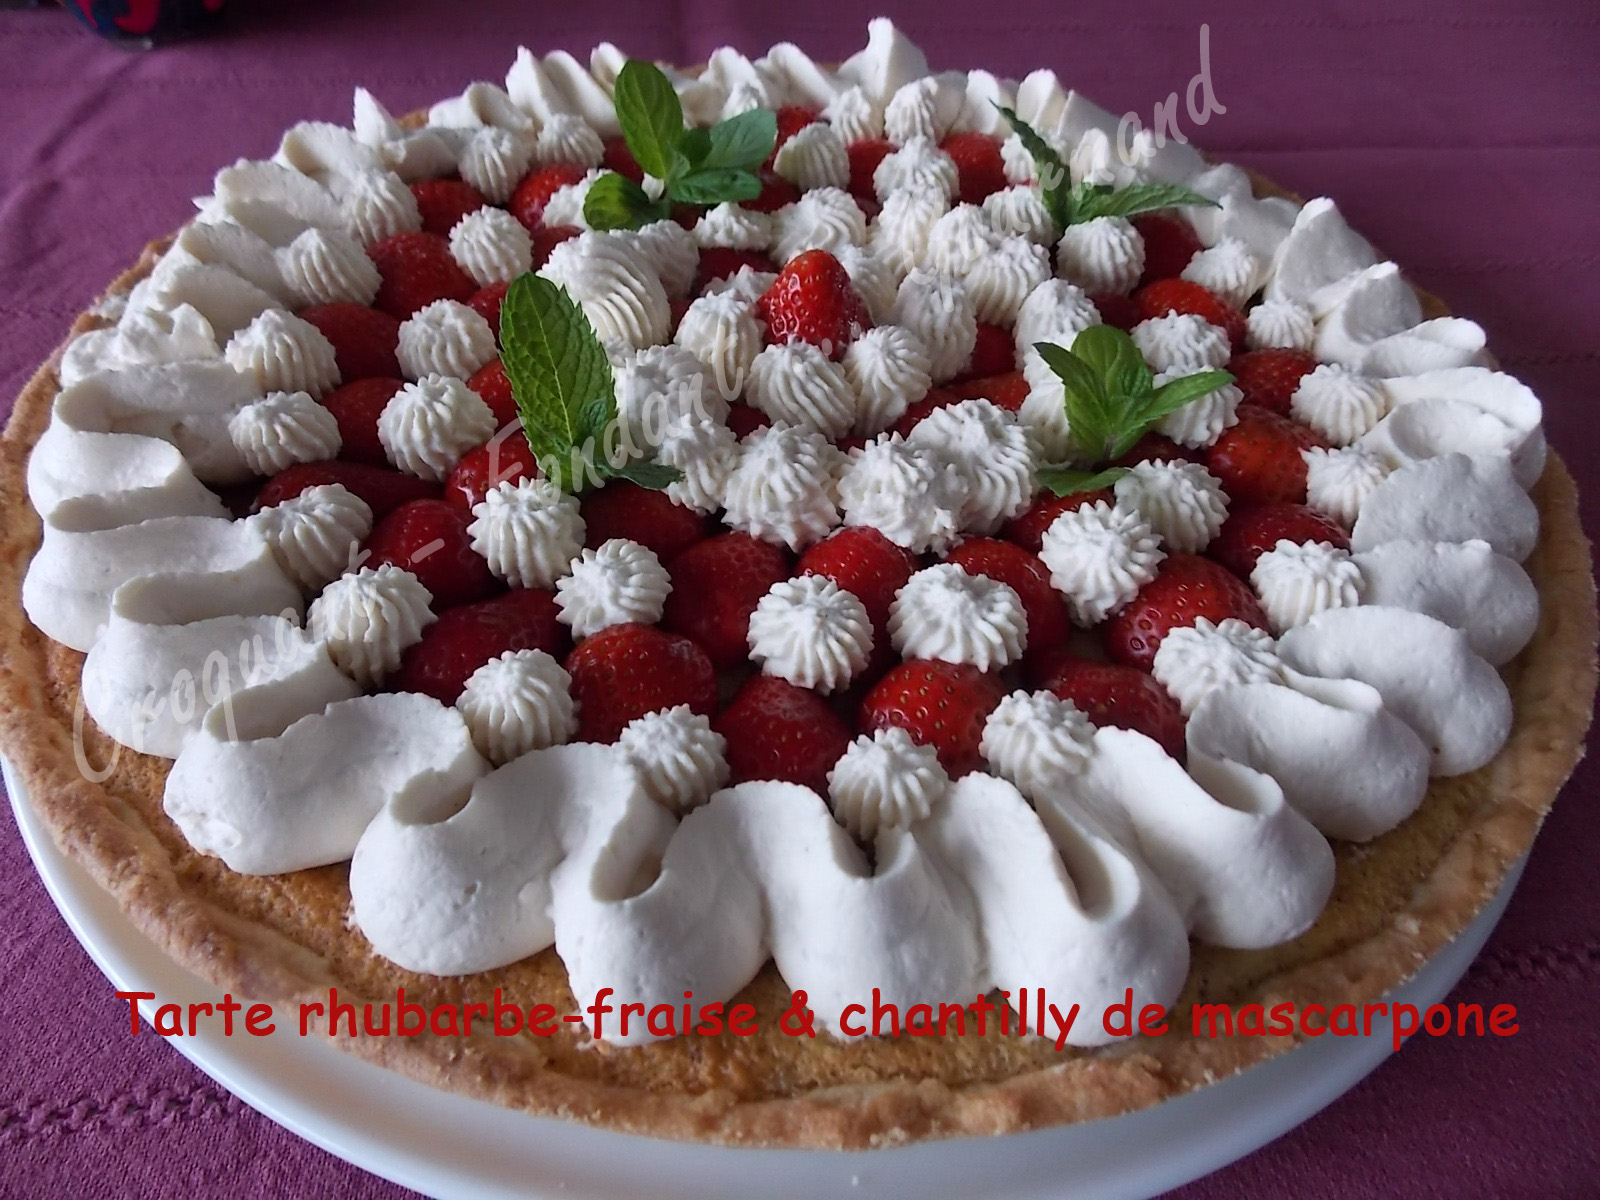 Tarte rhubarbe fraise croquant fondant gourmand - Decoration gateau avec creme chantilly ...